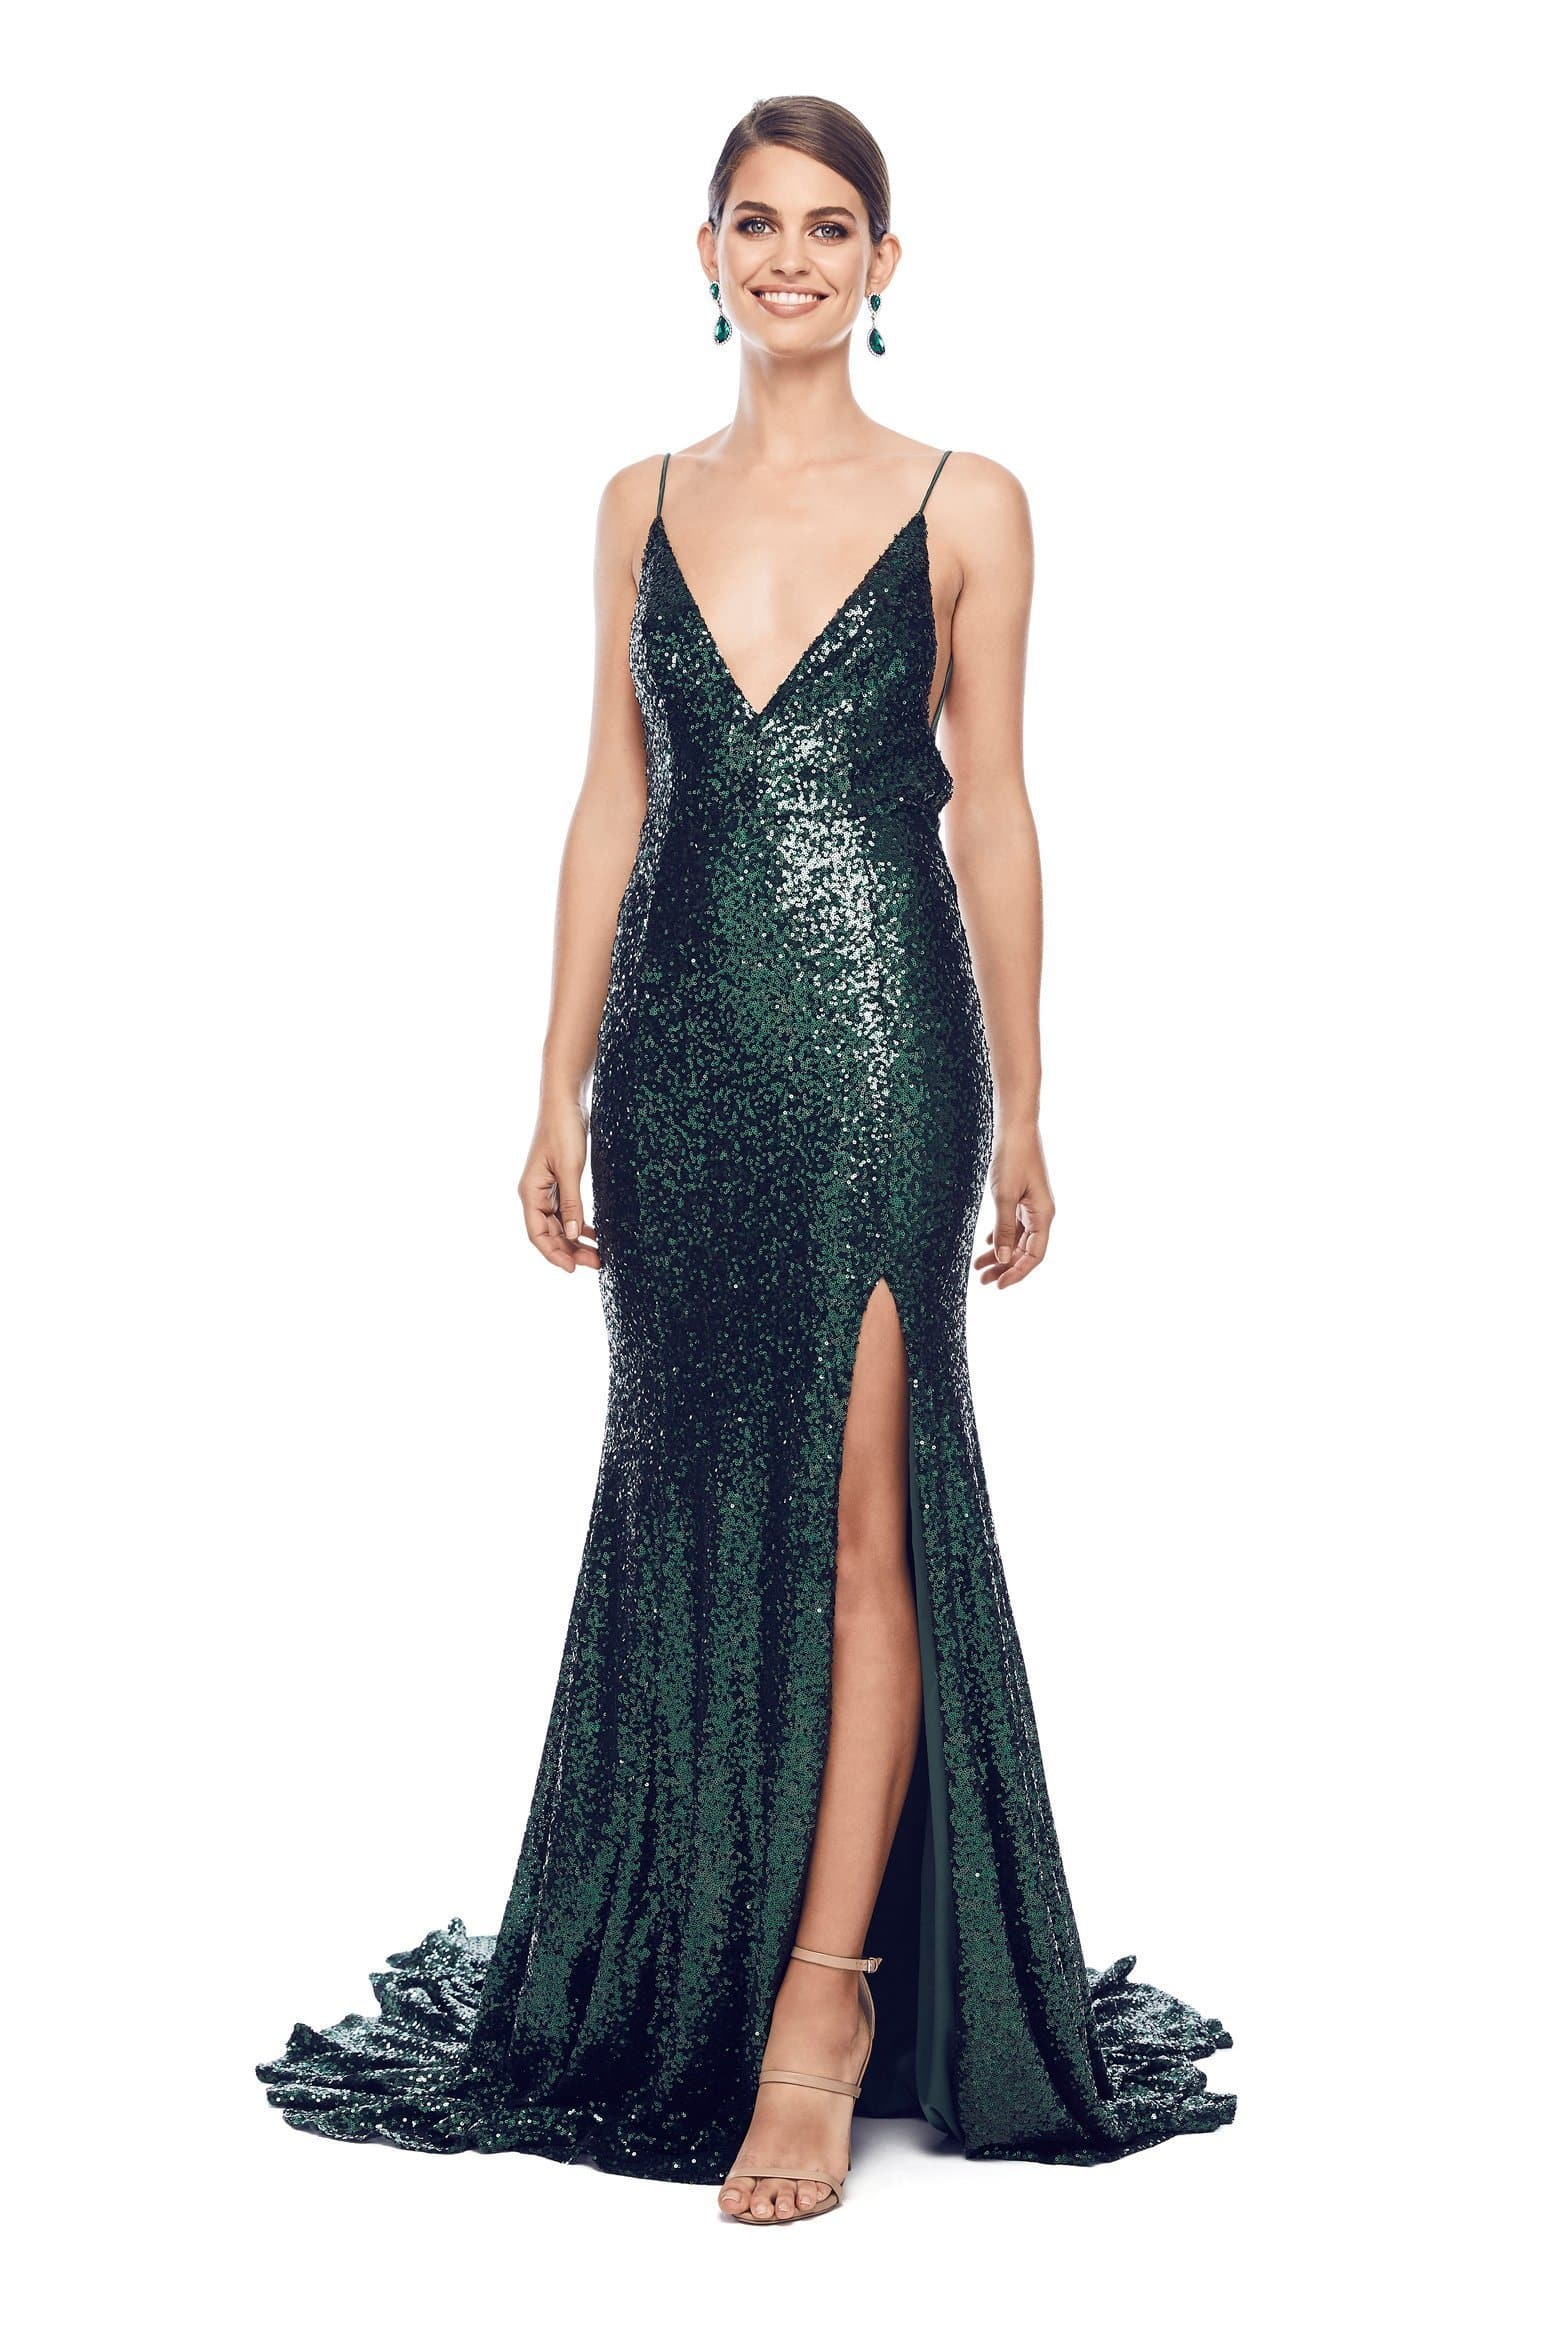 Armanah - Emerald Sequin Gown with V Neckline, Low Back and Side Slit